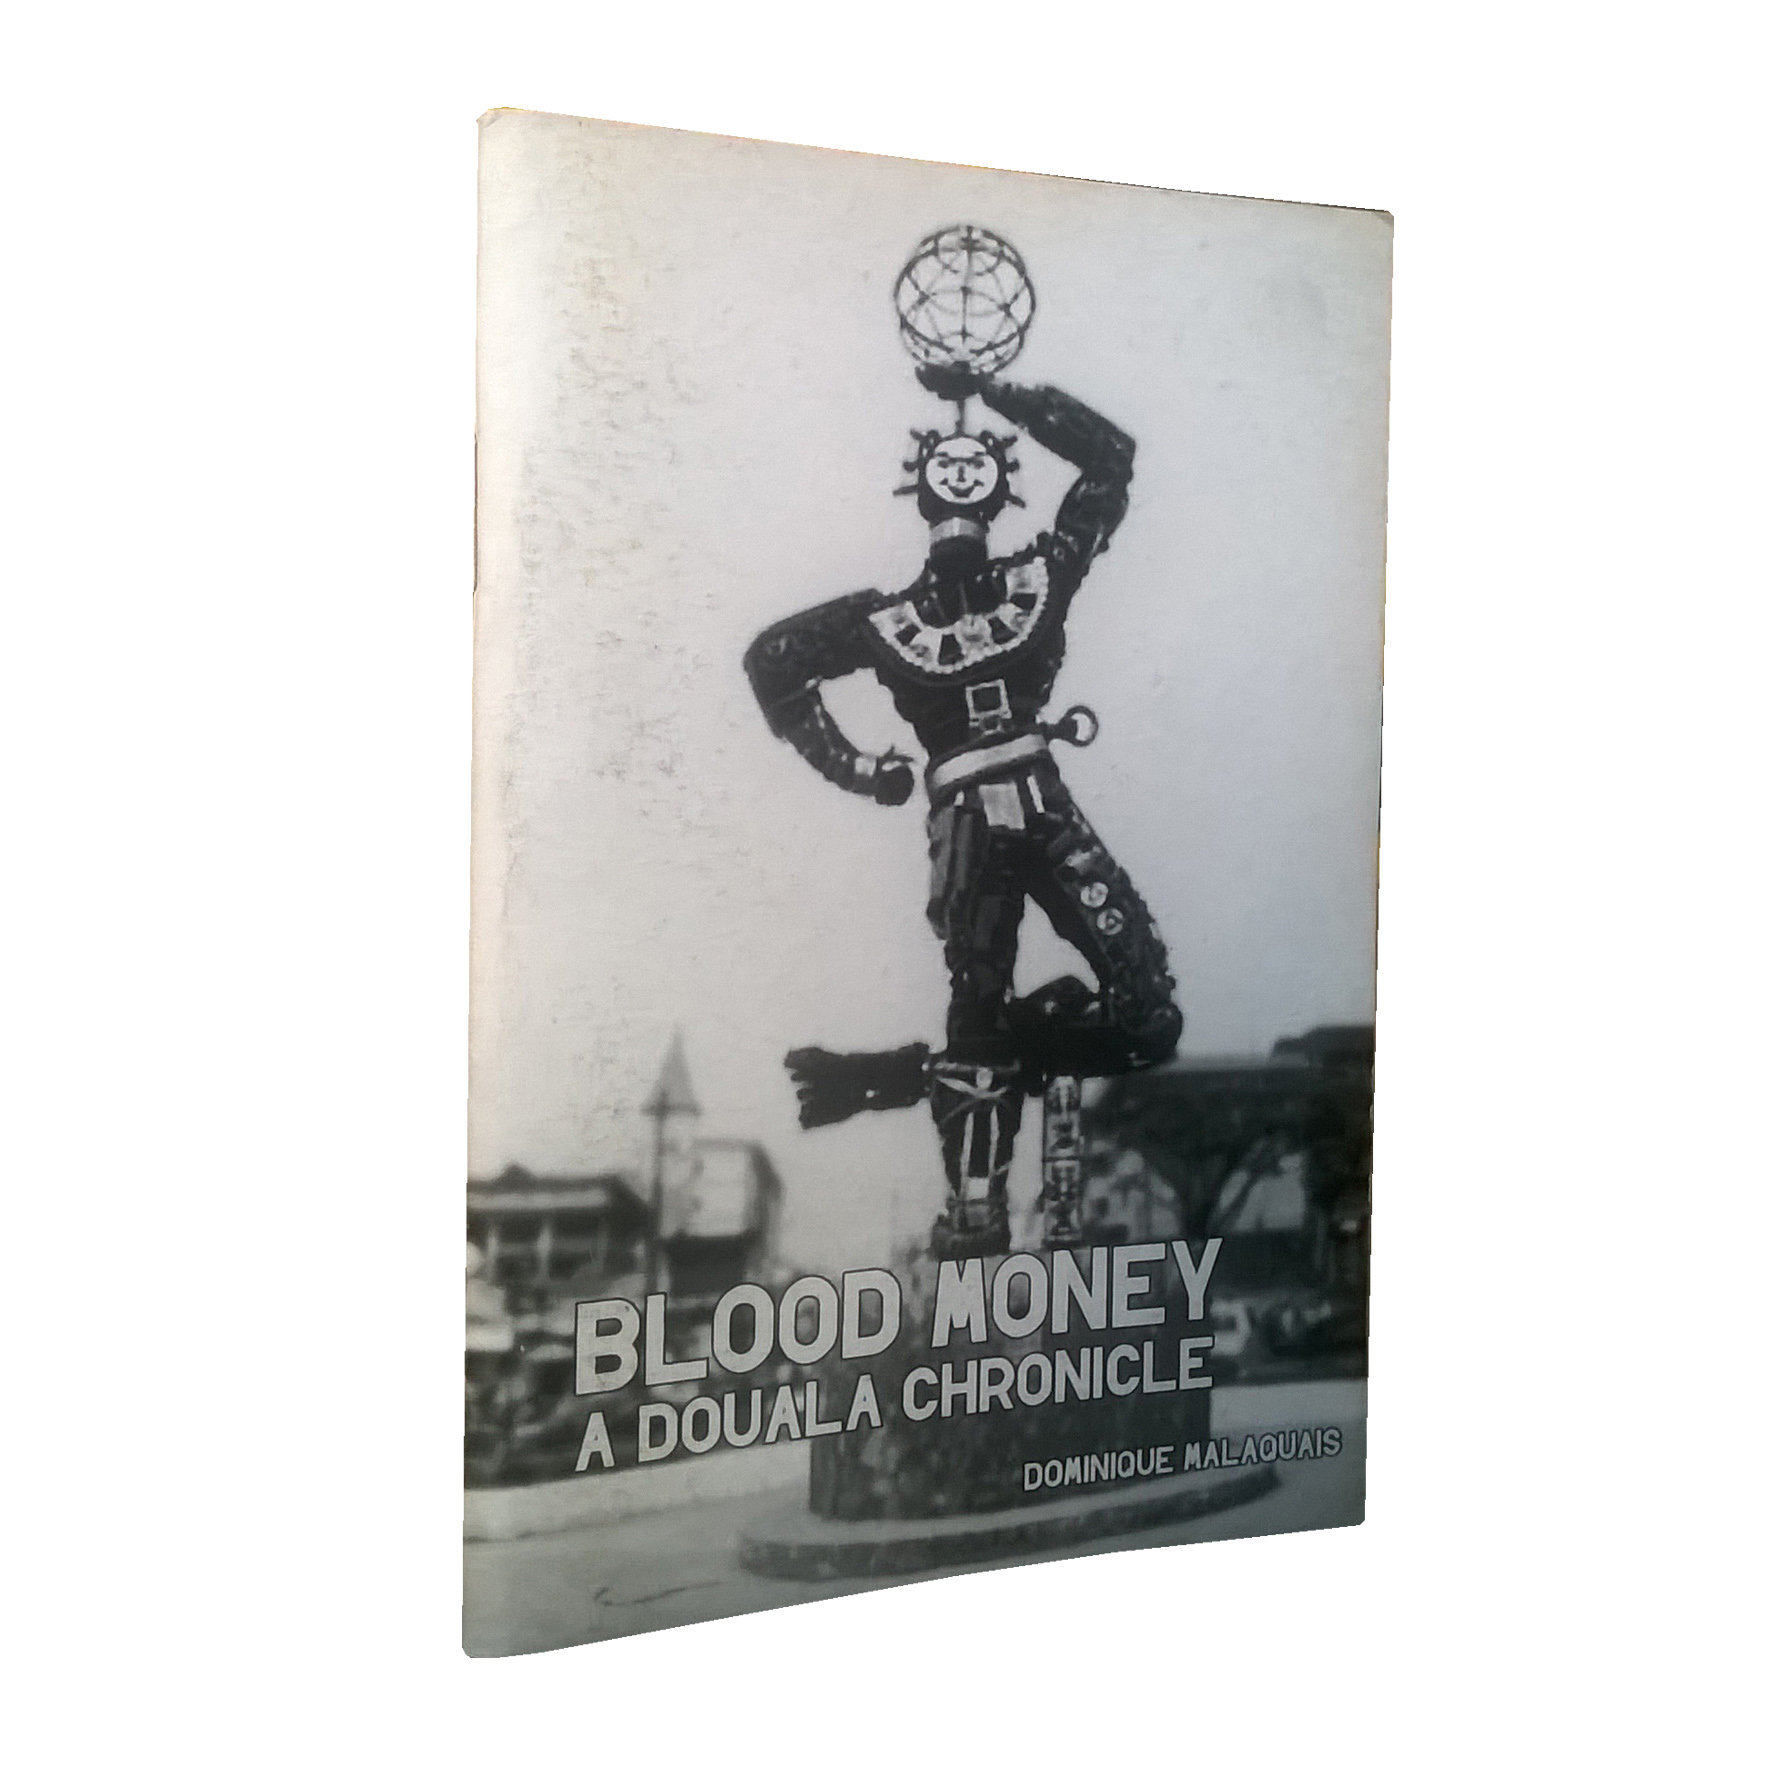 Chimurenganyana Series 1: Blood Money - A Douala Chronicle by Dominique Malaquais (2009) CN10